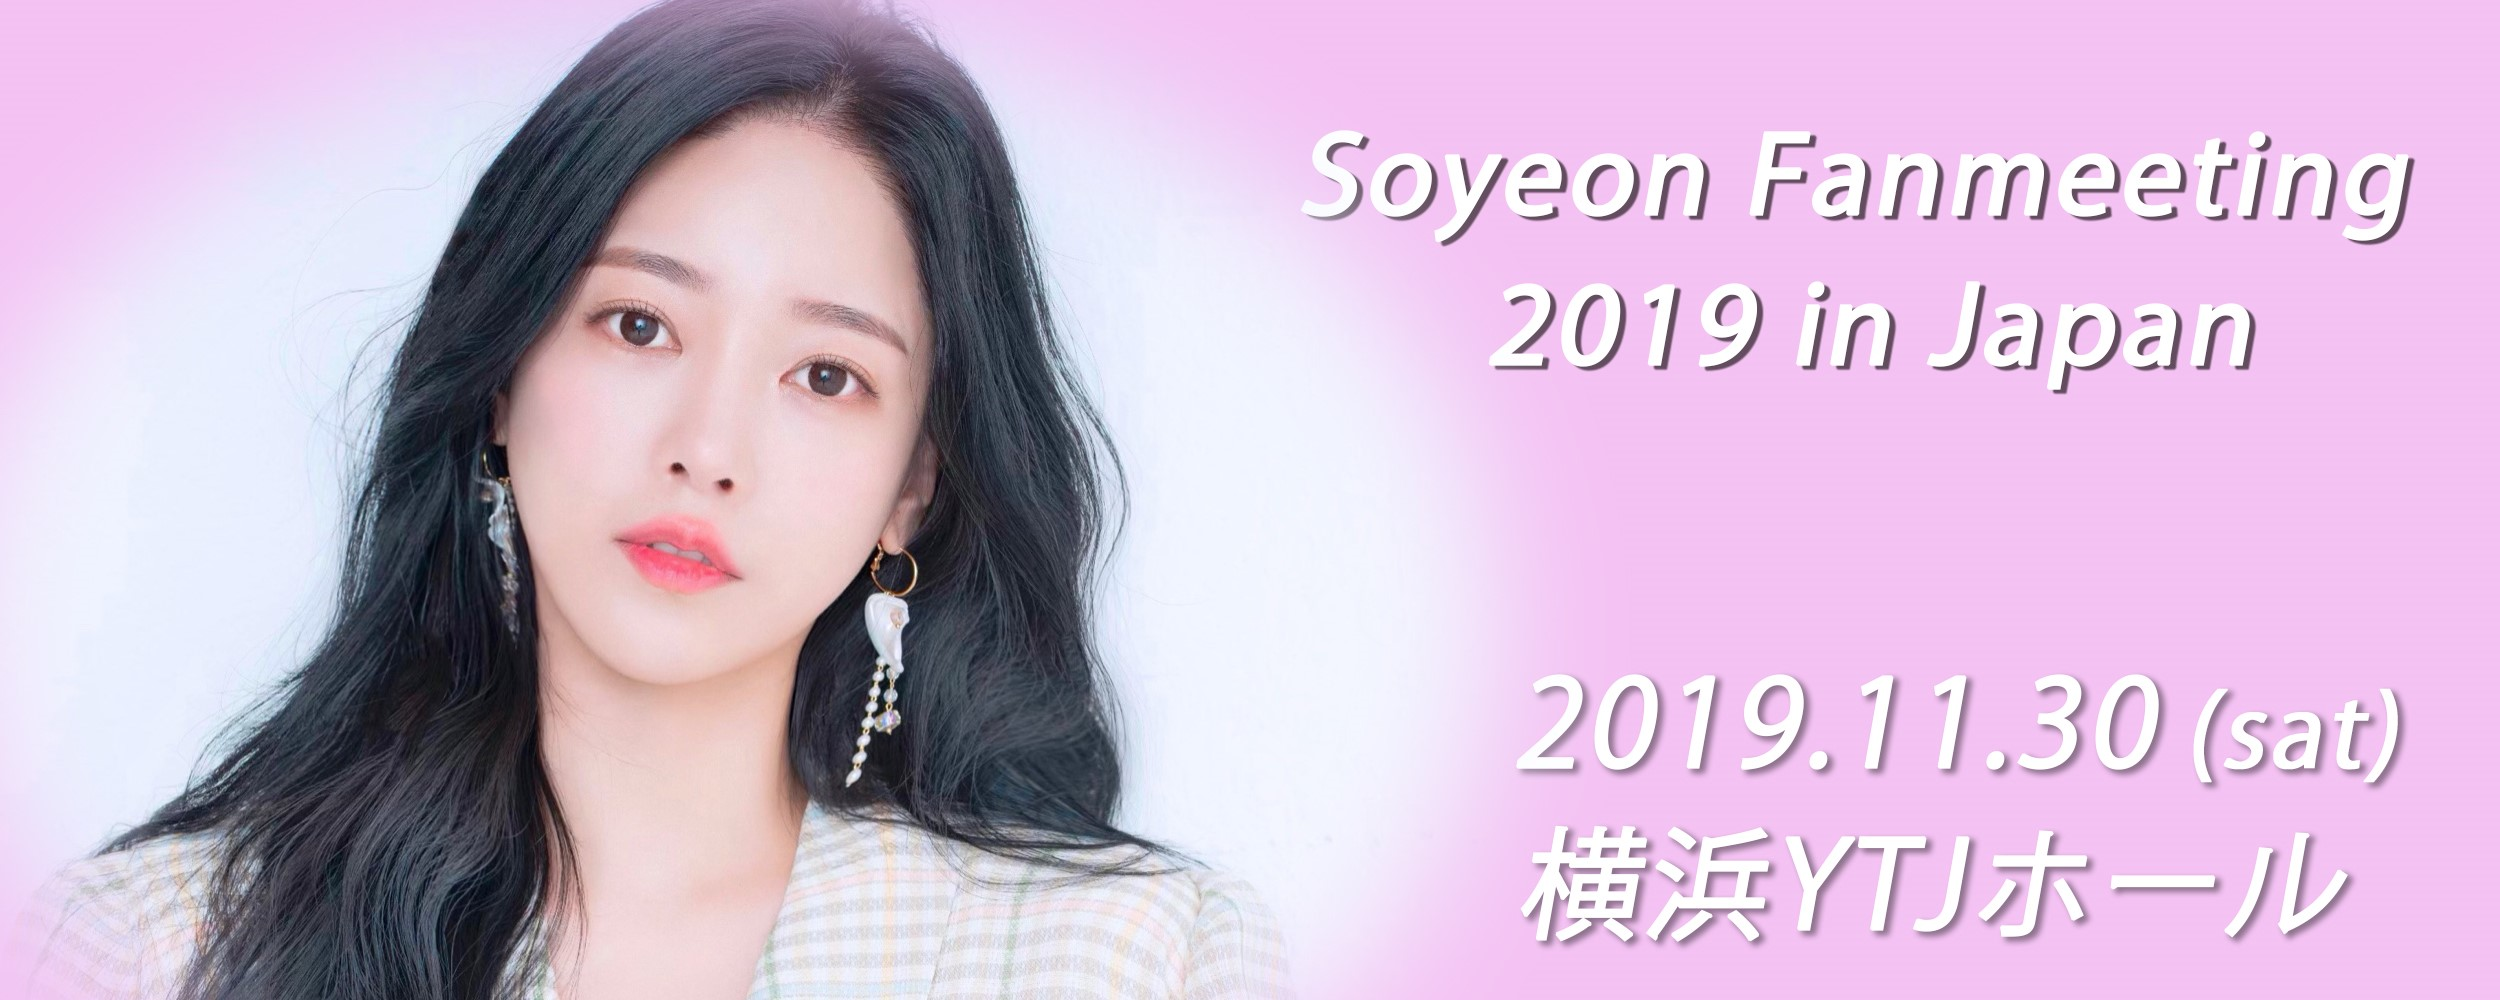 Soyeon Fanmeeting 2019 in Japan